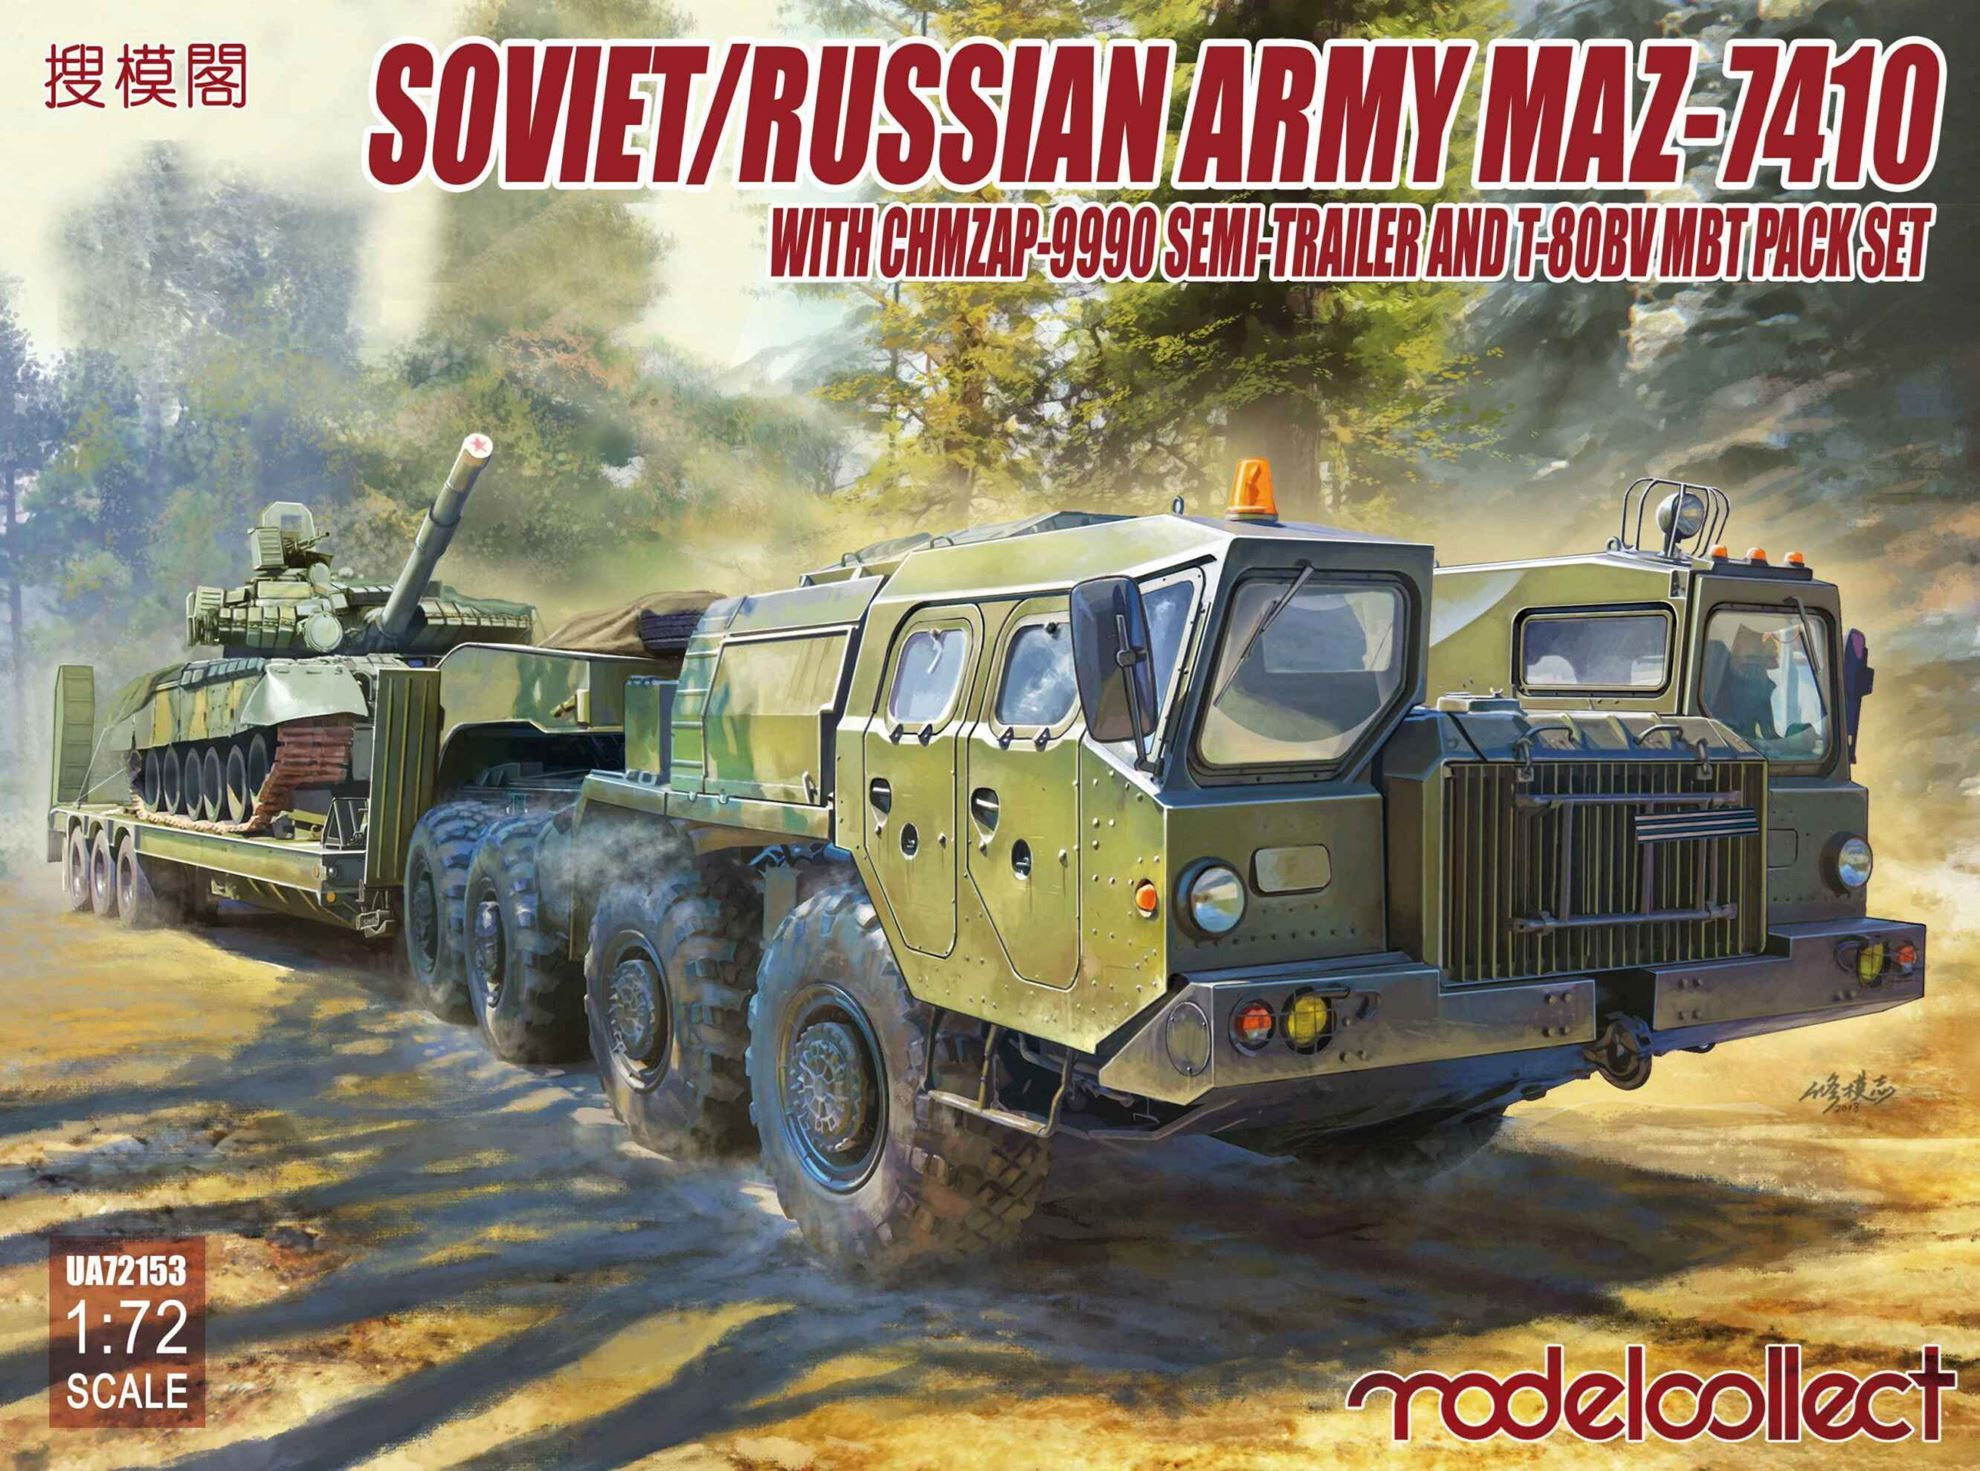 0004774_sovietrussian-army-maz-7410-with